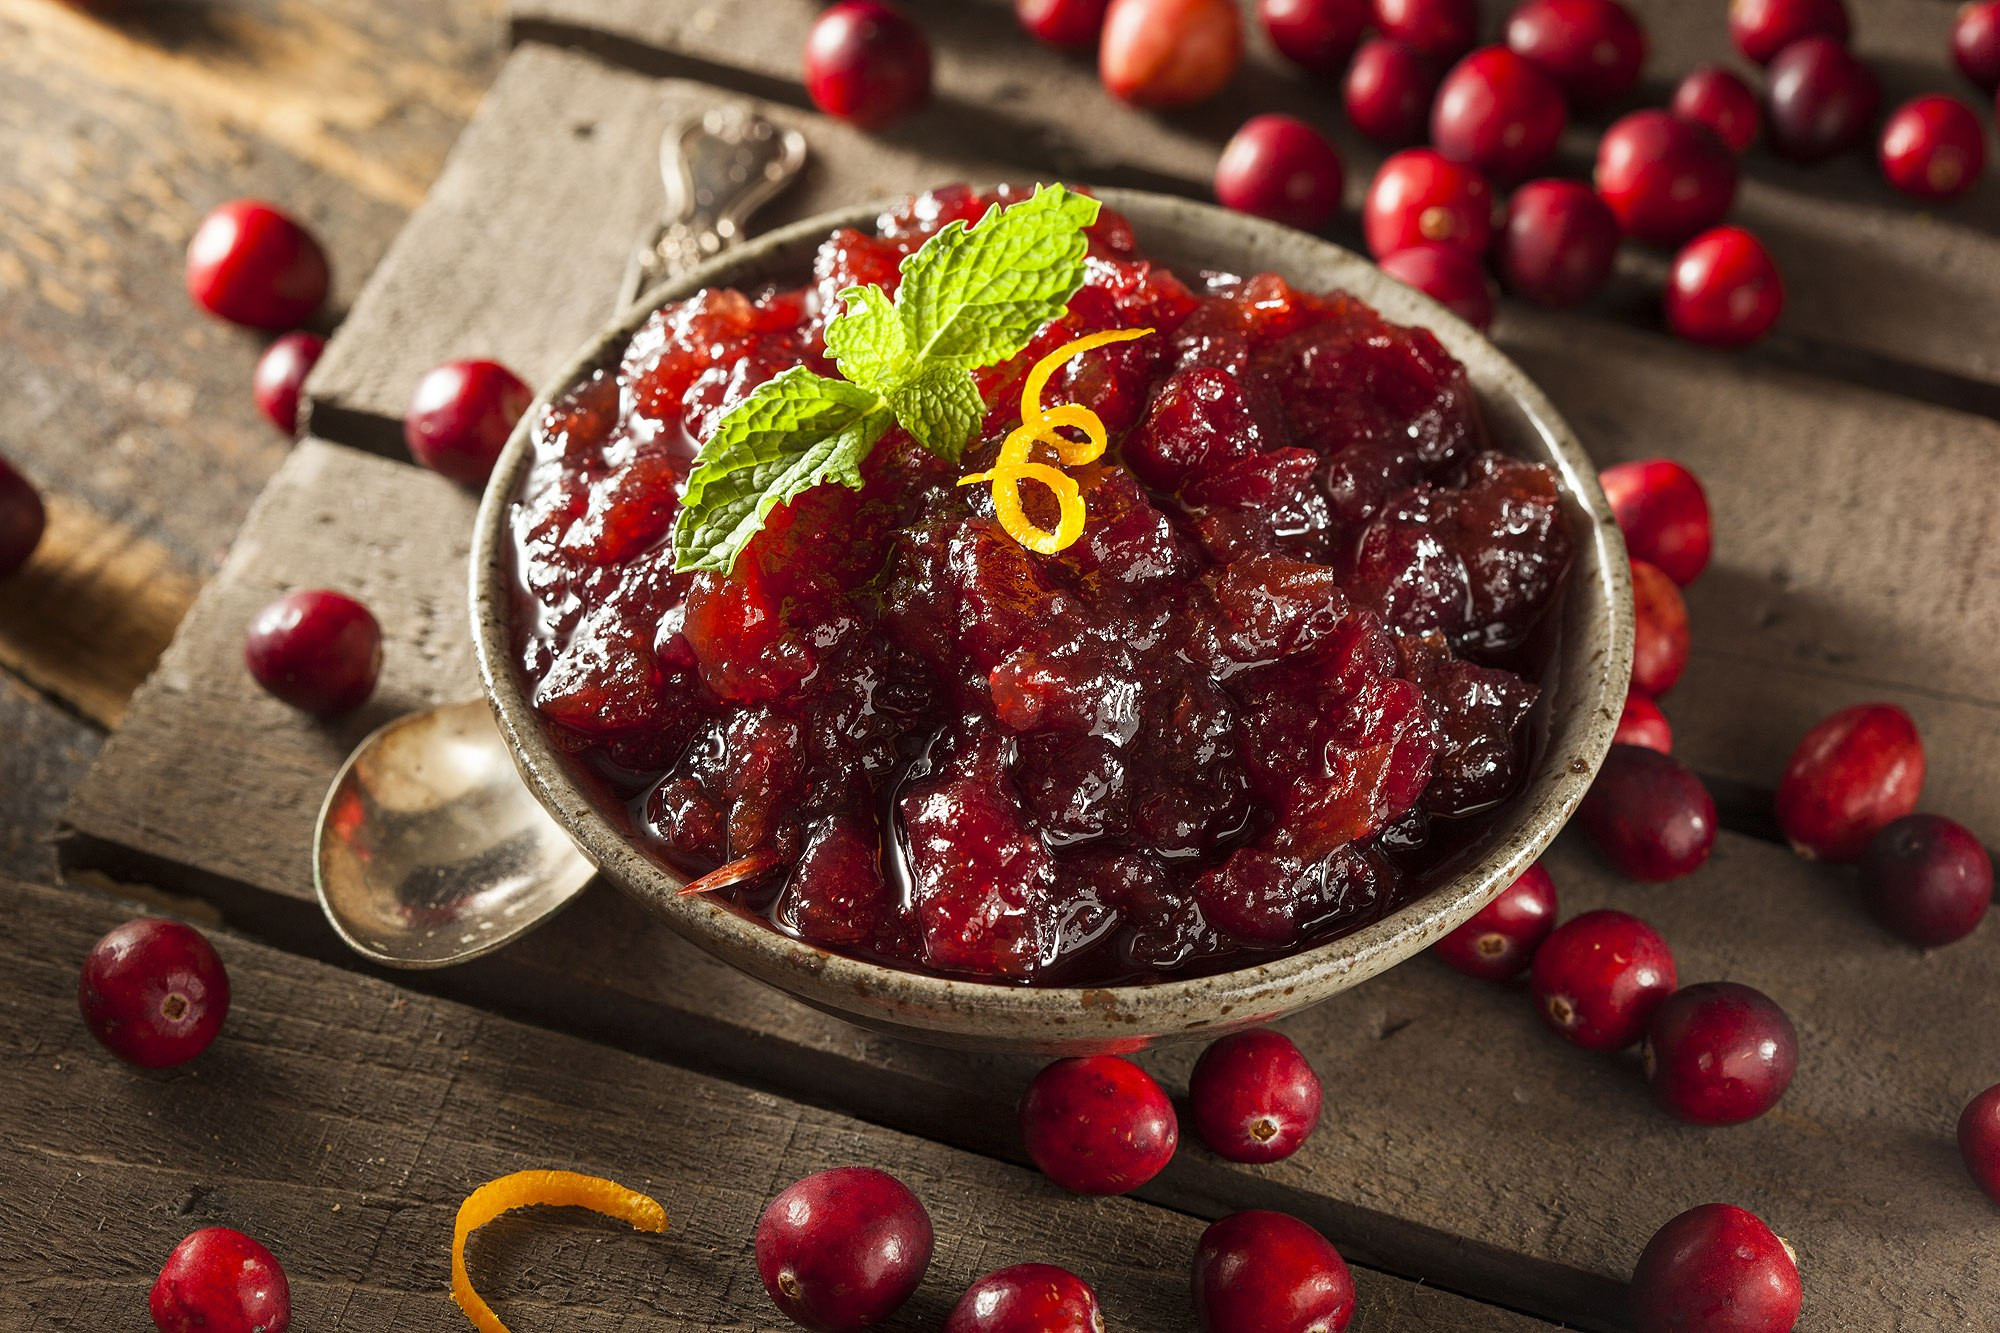 Cranberry Desserts For Thanksgiving  Thanksgiving Cranberry Sauce Recipes from the Institute